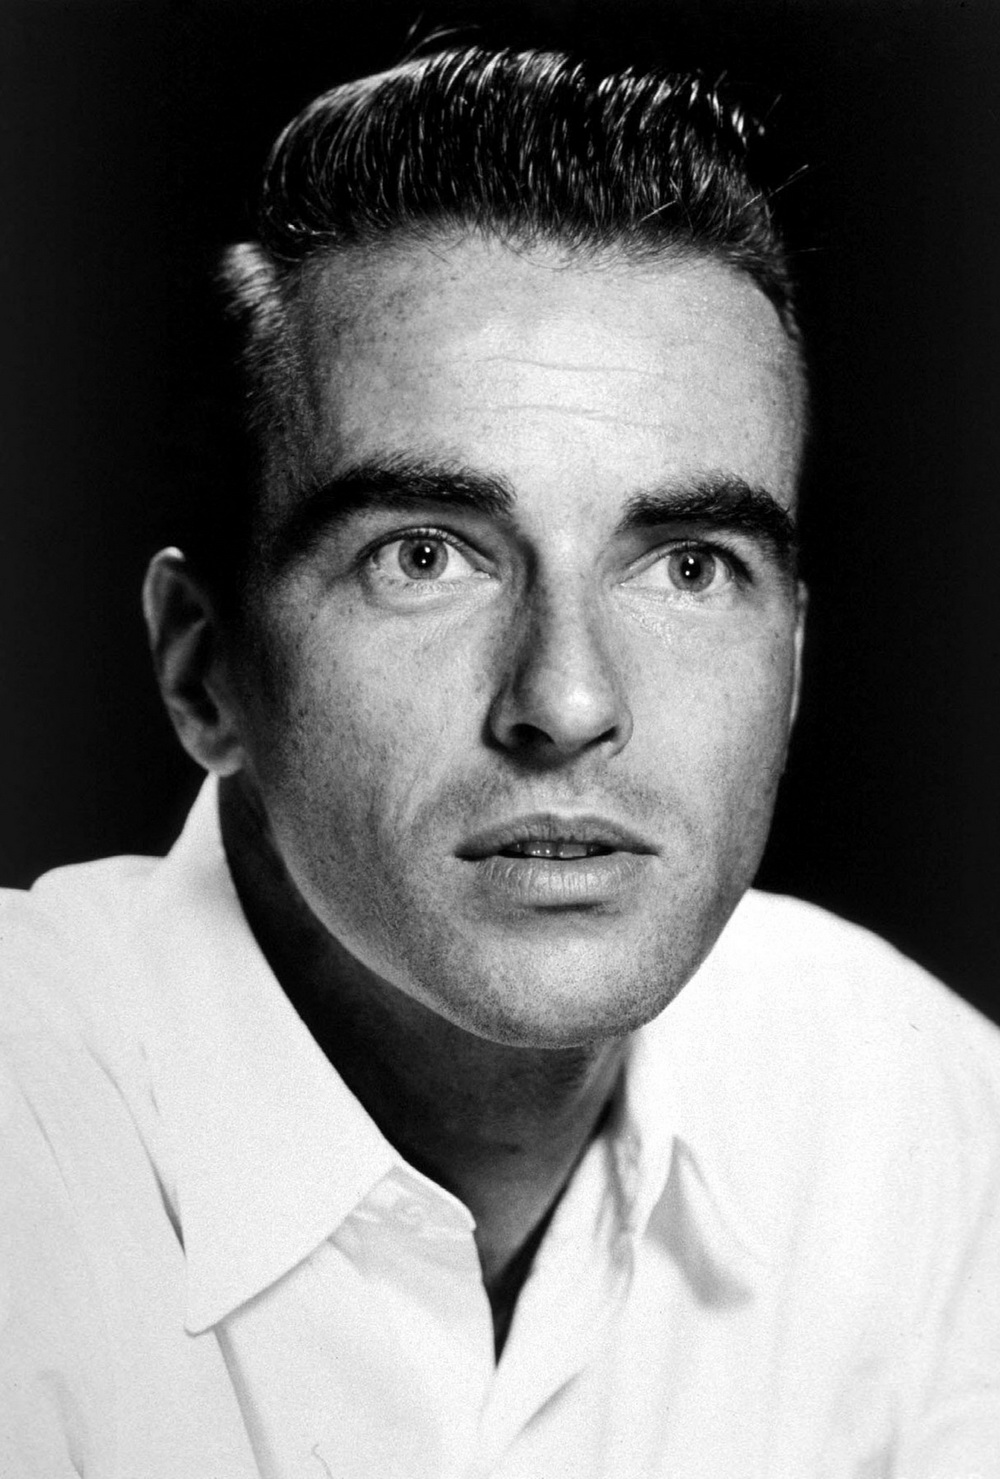 montgomery clift quotesmontgomery clift parents, montgomery clift photos, montgomery clift nndb, montgomery clift car, montgomery clift nuremberg, montgomery clift wiki, montgomery clift rock hudson, montgomery clift, montgomery clift death, montgomery clift photos after accident, montgomery clift biopic, montgomery clift before and after, montgomery clift quotes, montgomery clift matt bomer, montgomery clift interview, montgomery clift tumblr, montgomery clift documentary, montgomery clift red river, montgomery clift bio, montgomery clift imdb